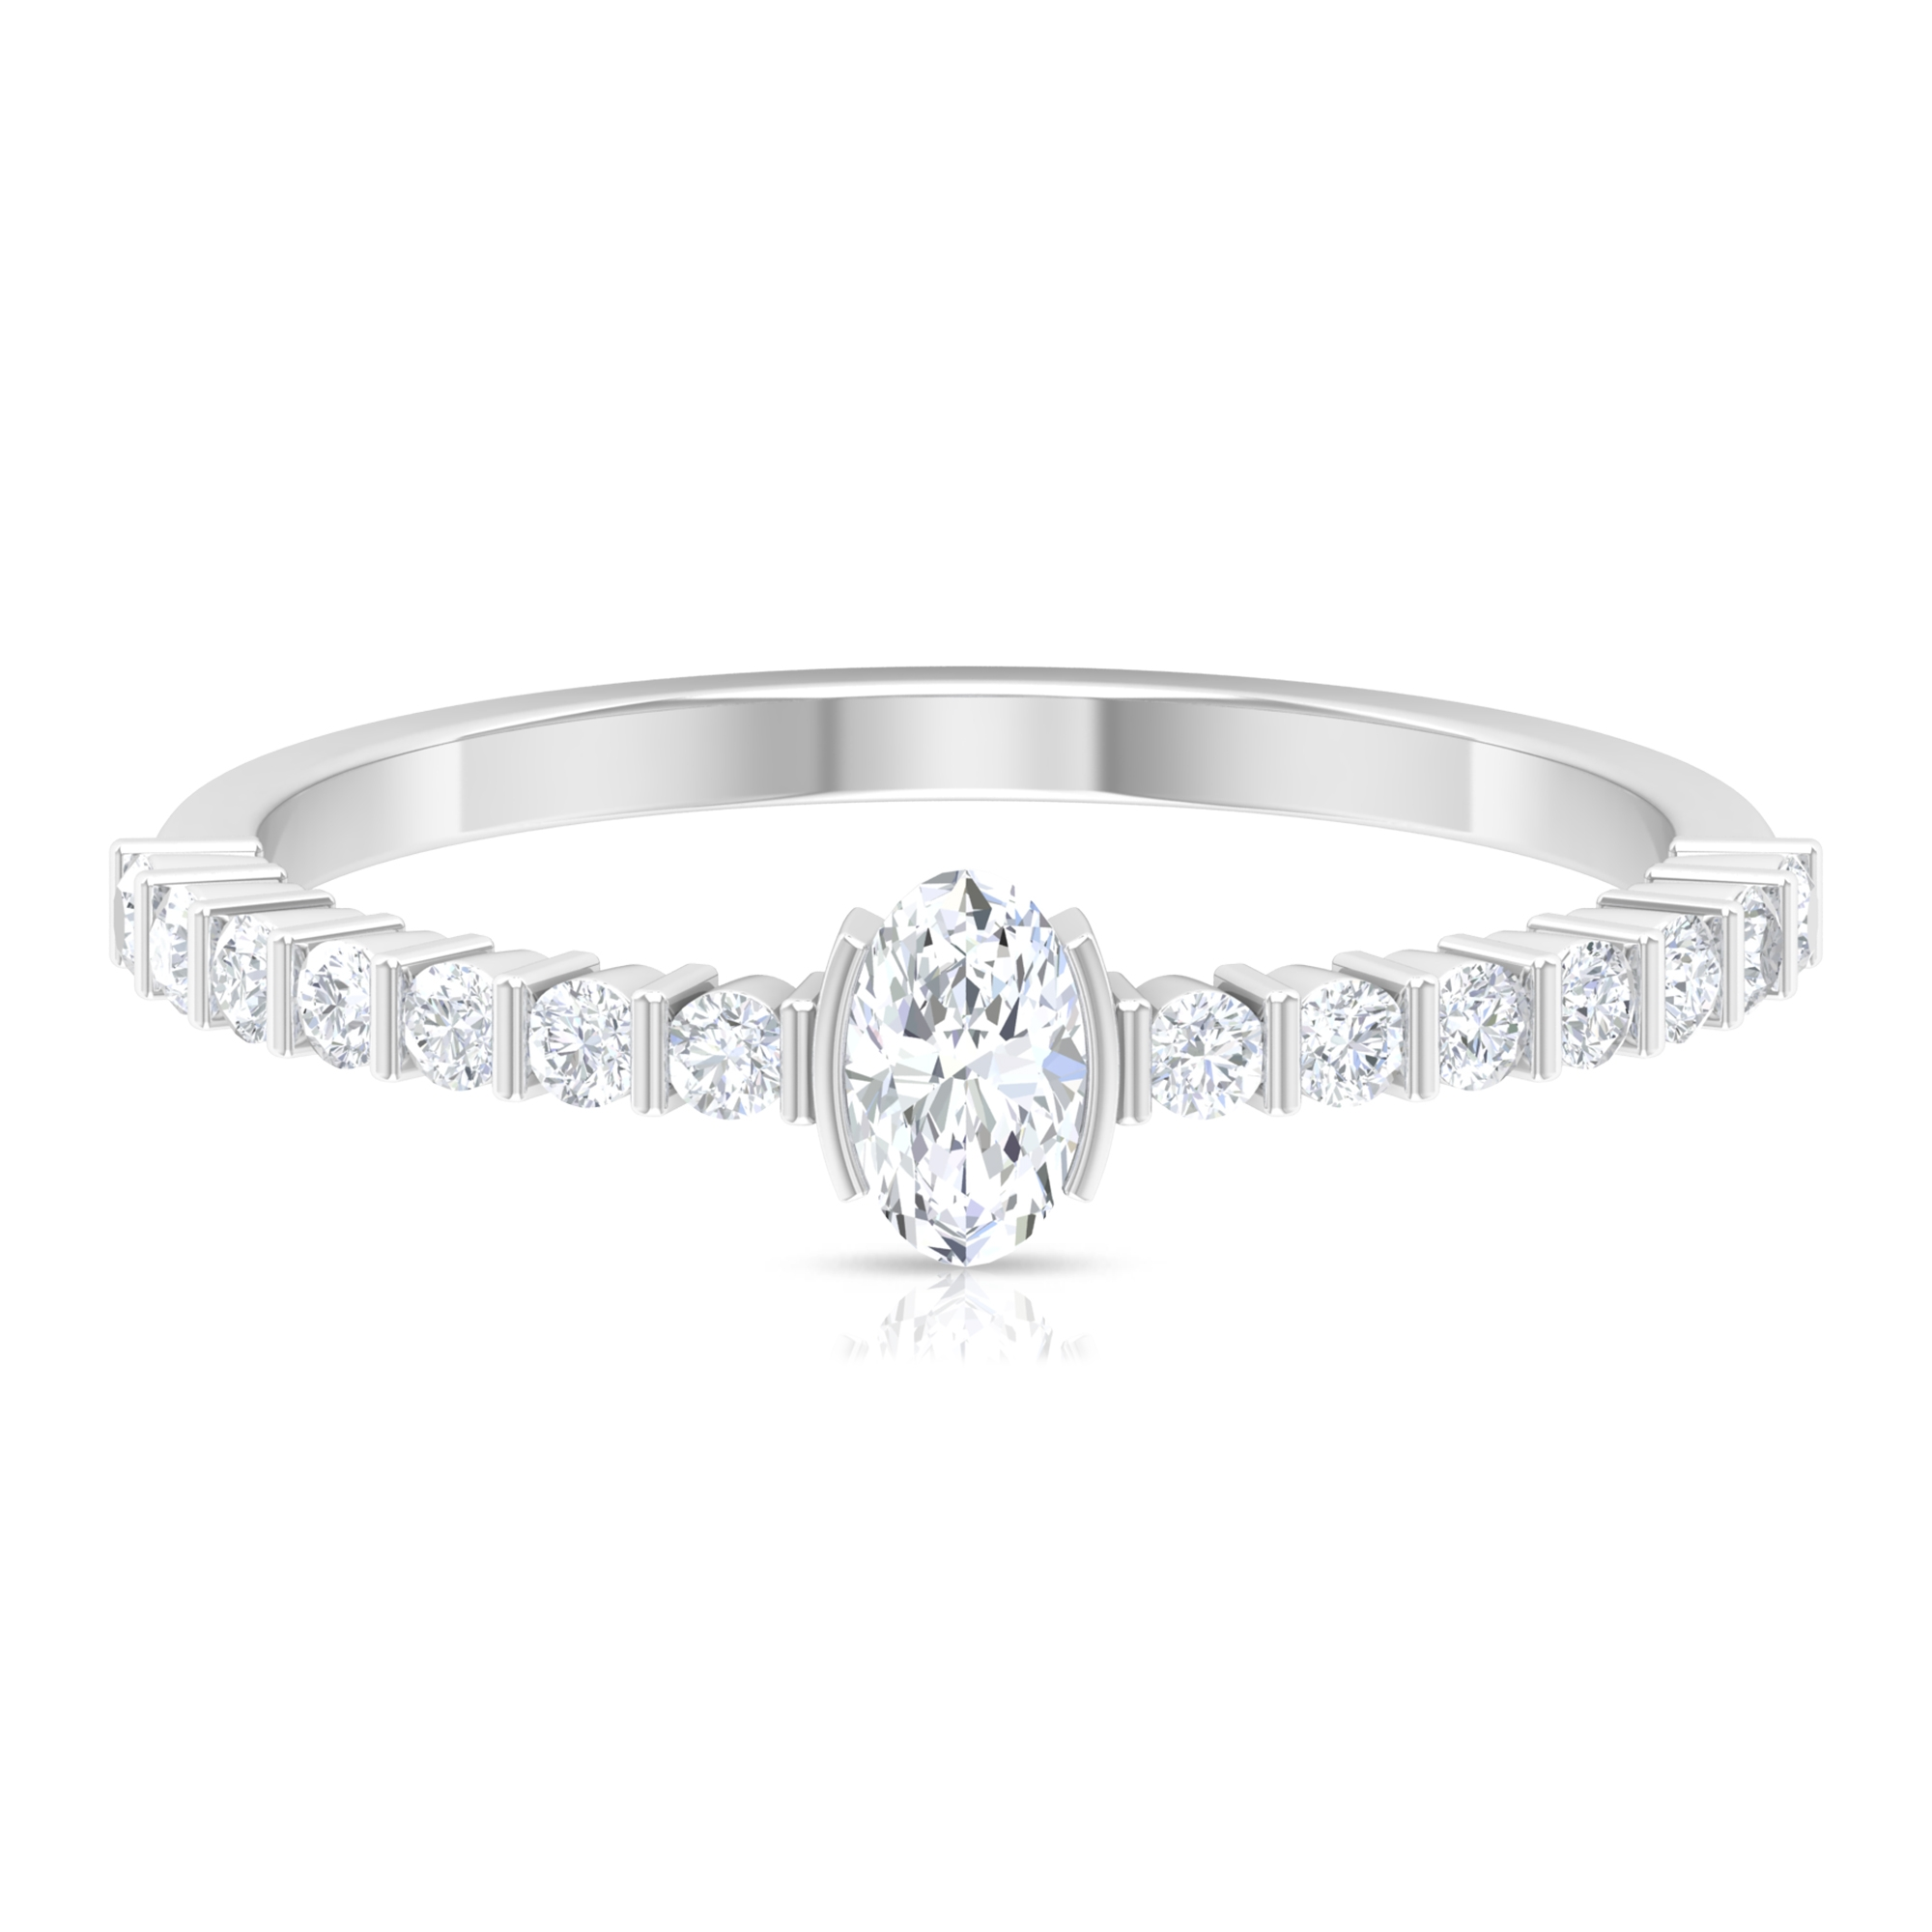 1/2 CT Oval Shape Solitaire Diamond Ring in Half Bezel Setting with Bar Set Diamond